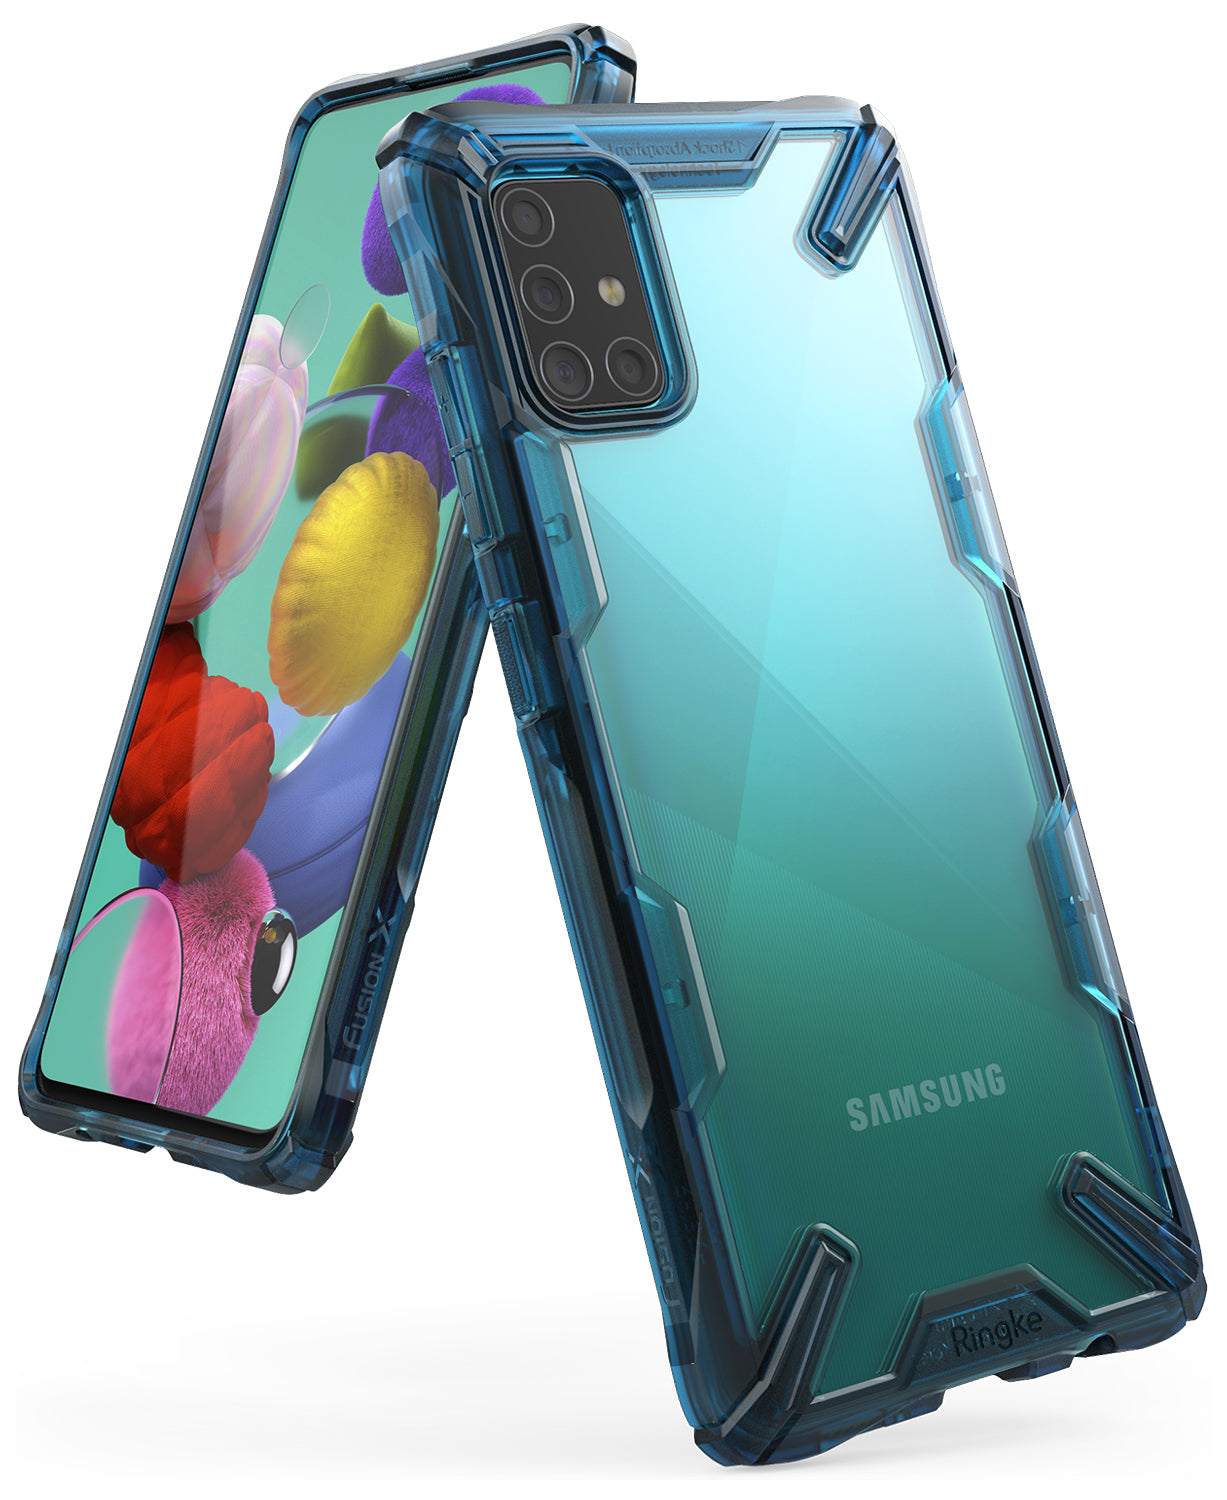 ringke galaxy a51 fusion-x space blue color case